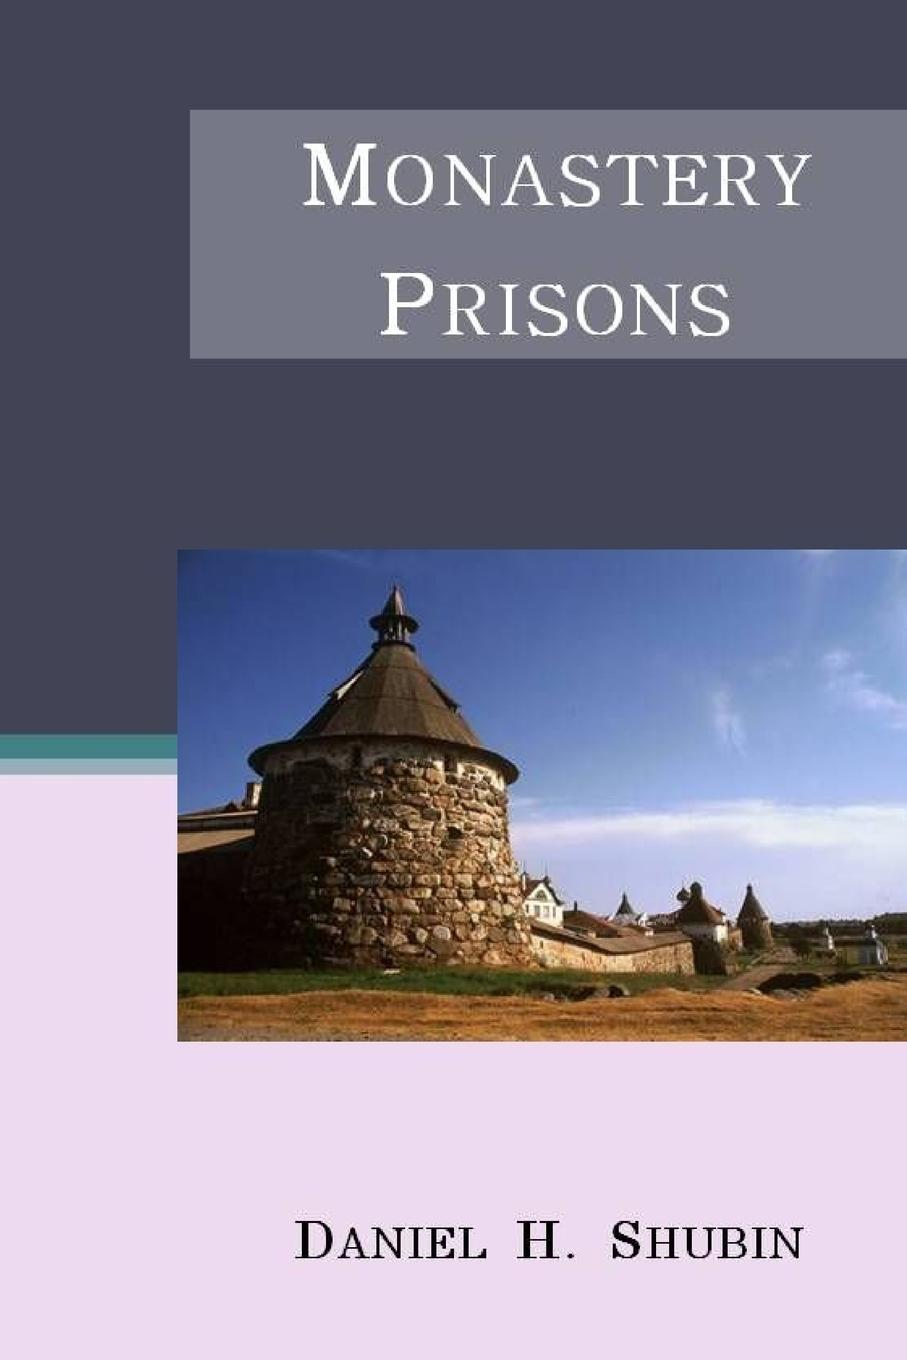 Daniel H. Shubin Monastery Prisons the crisis of religious toleration in imperial russia